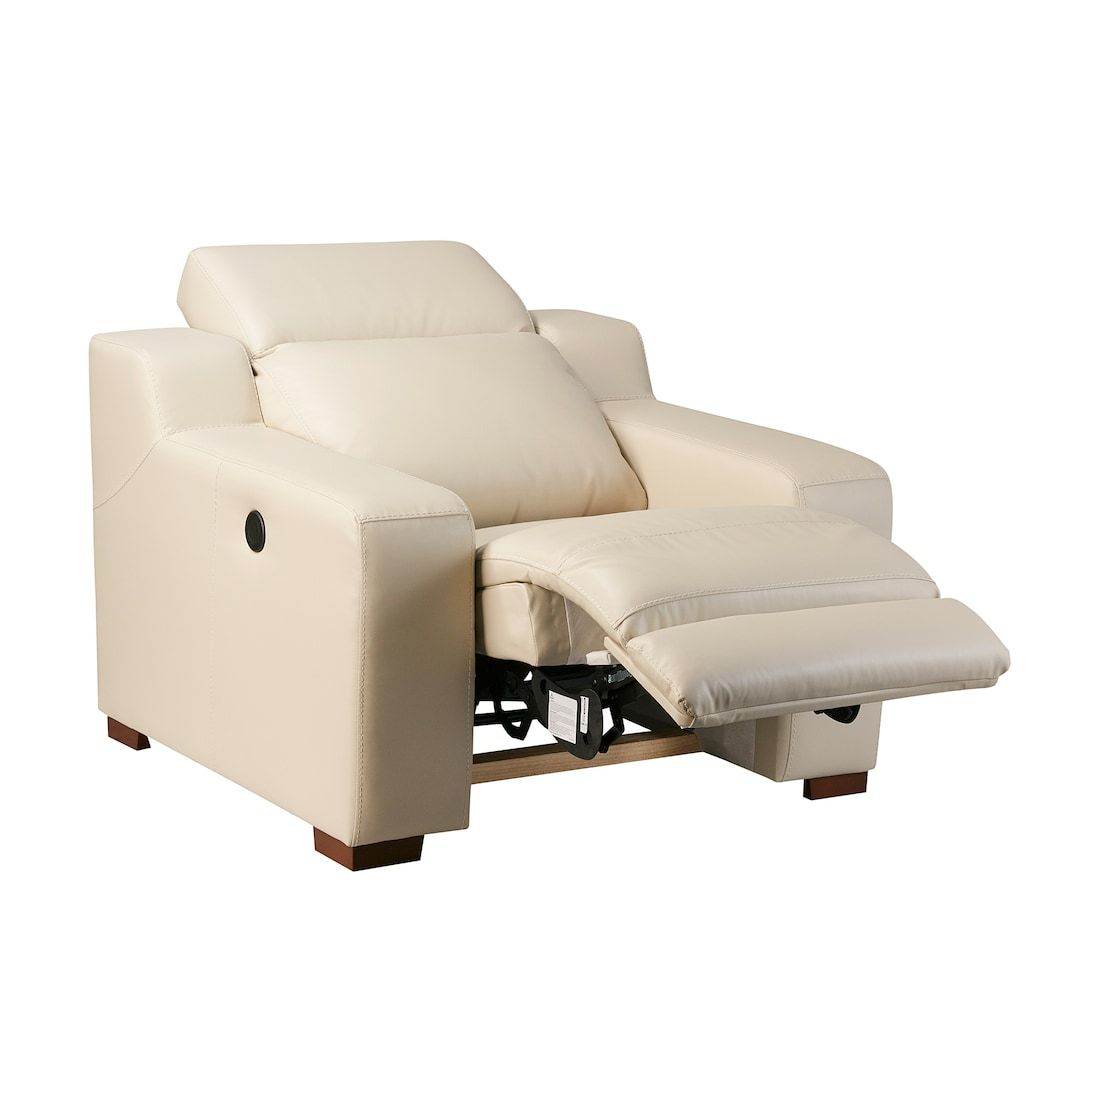 Home Furniture Store Modern Furnishings Décor Reclining Armchair At Home Furniture Store White Armchair